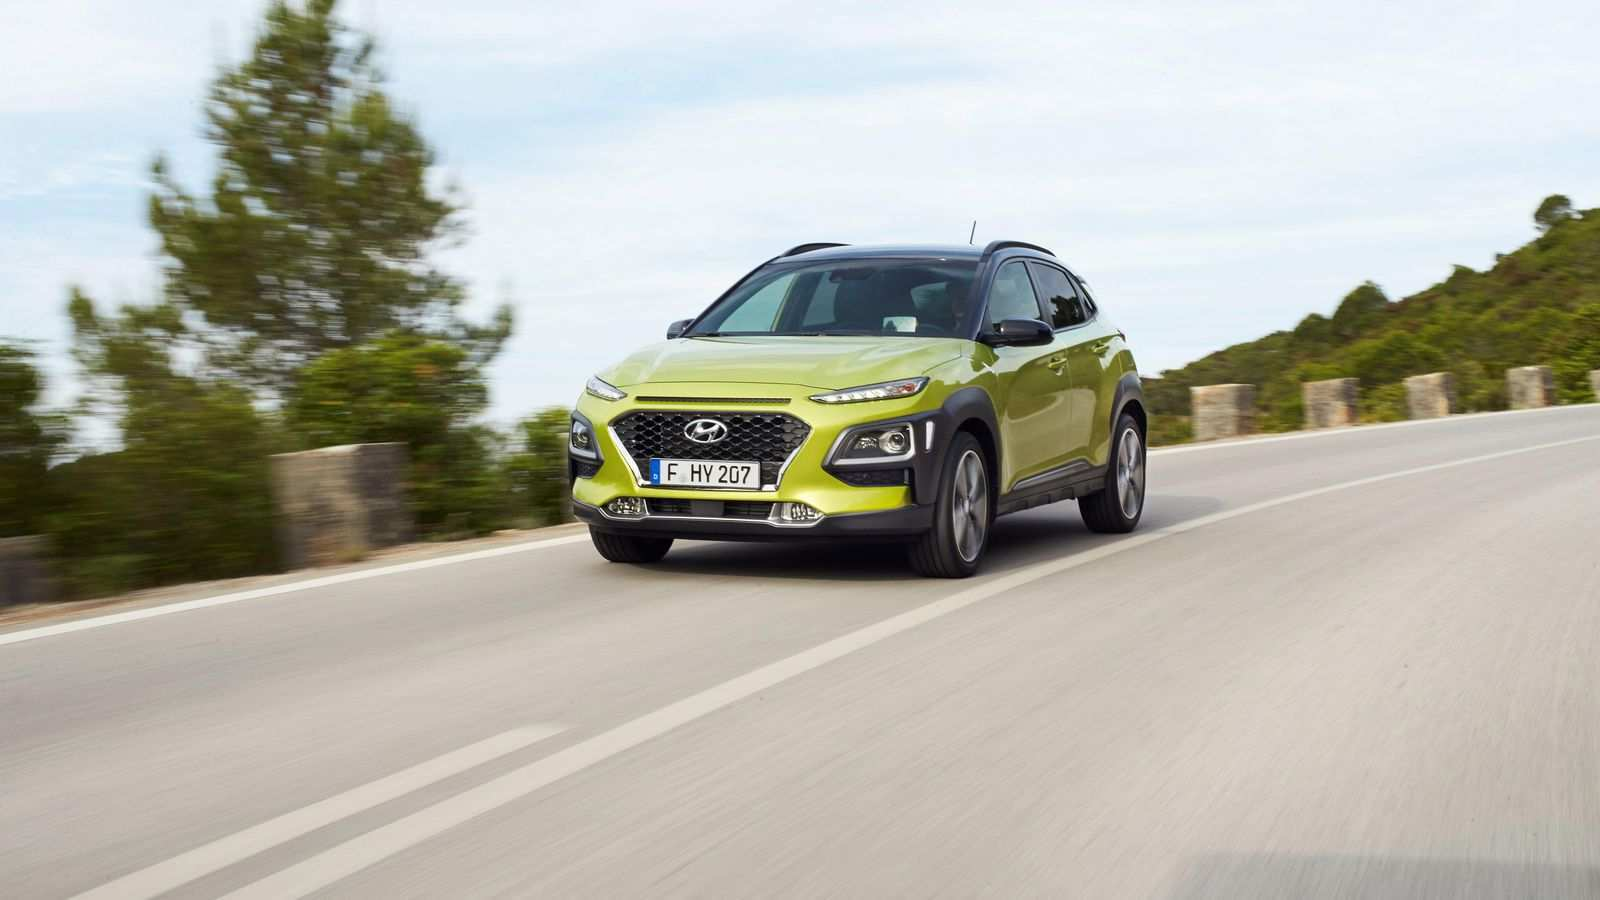 37 All New Hyundai Kona 2020 Review Specs and Review with Hyundai Kona 2020 Review